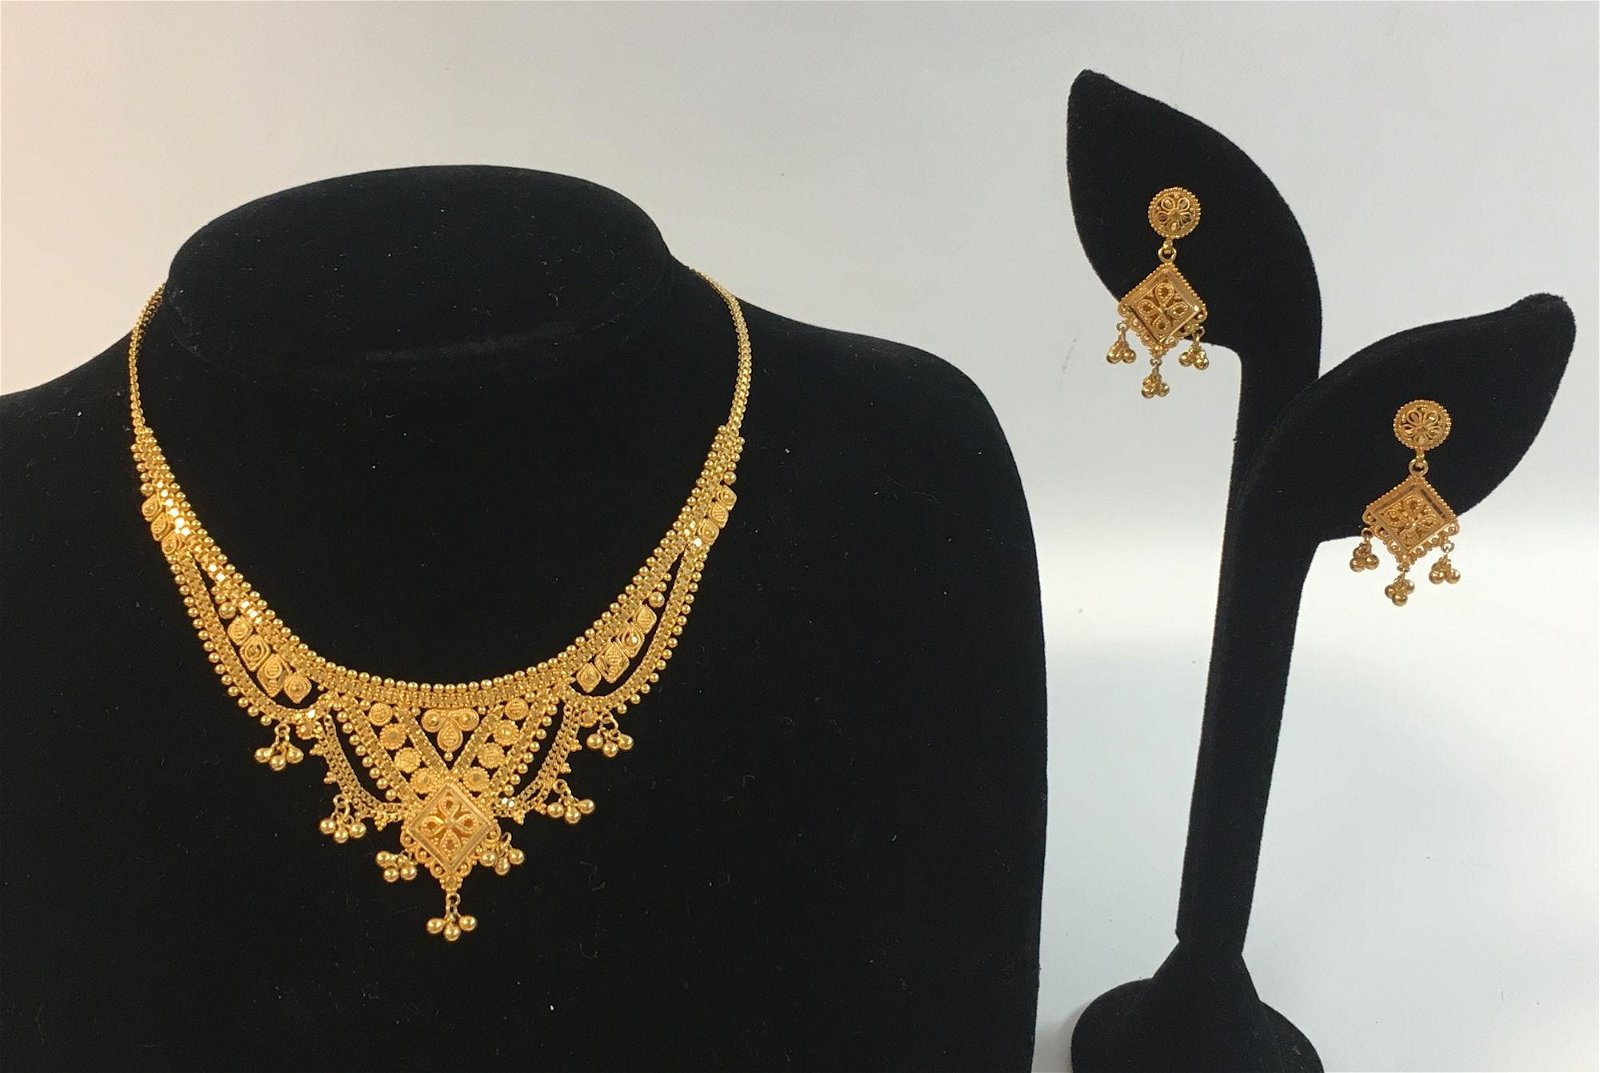 22KT INDIAN GOLD JEWELRY SET